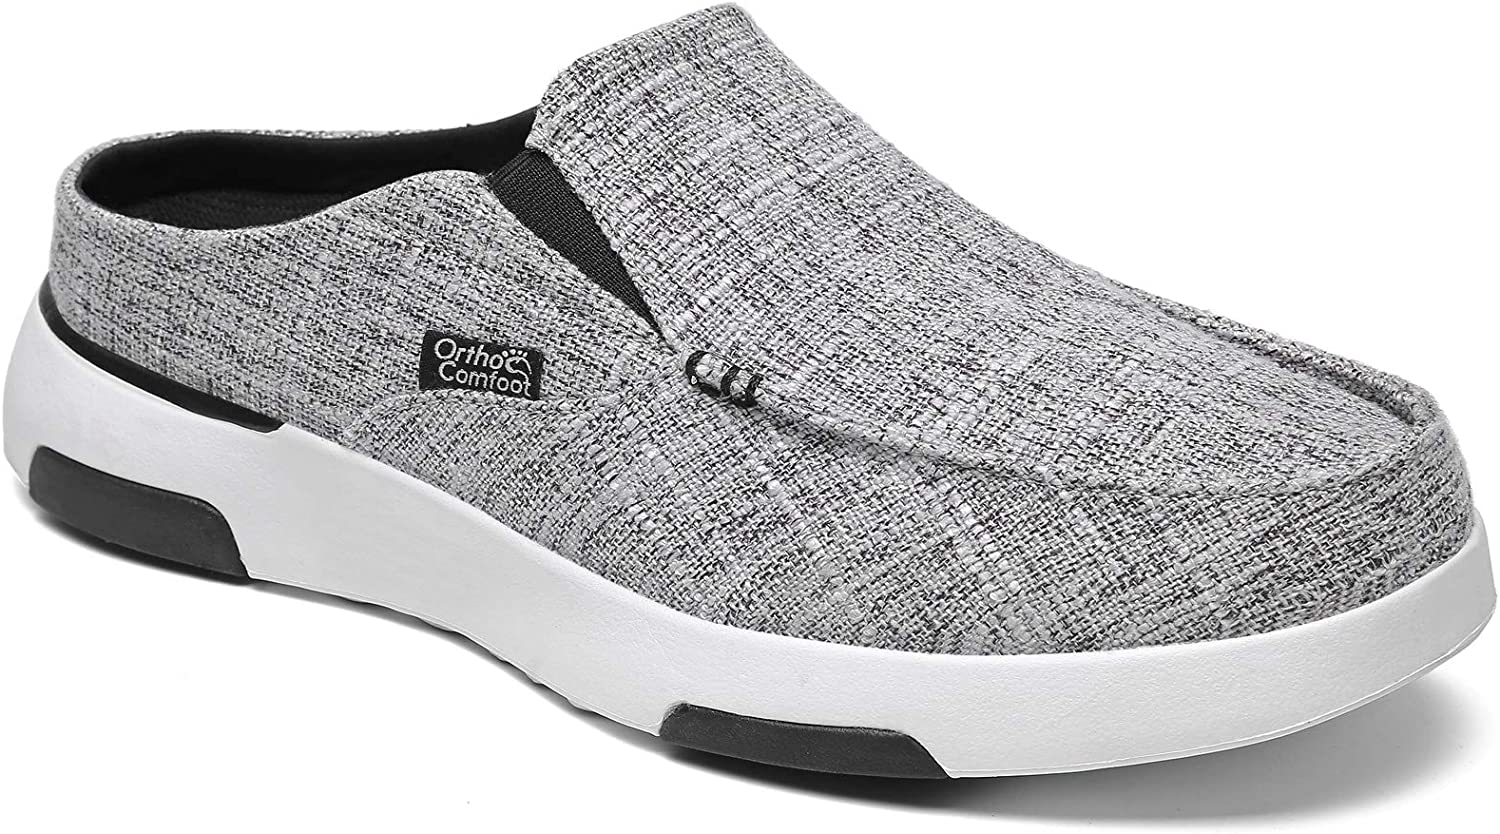 Men's Loafers Slip-ons Plantar Super beauty product restock quality top Fasciitis R Fees free!! Foot Heel Pain and